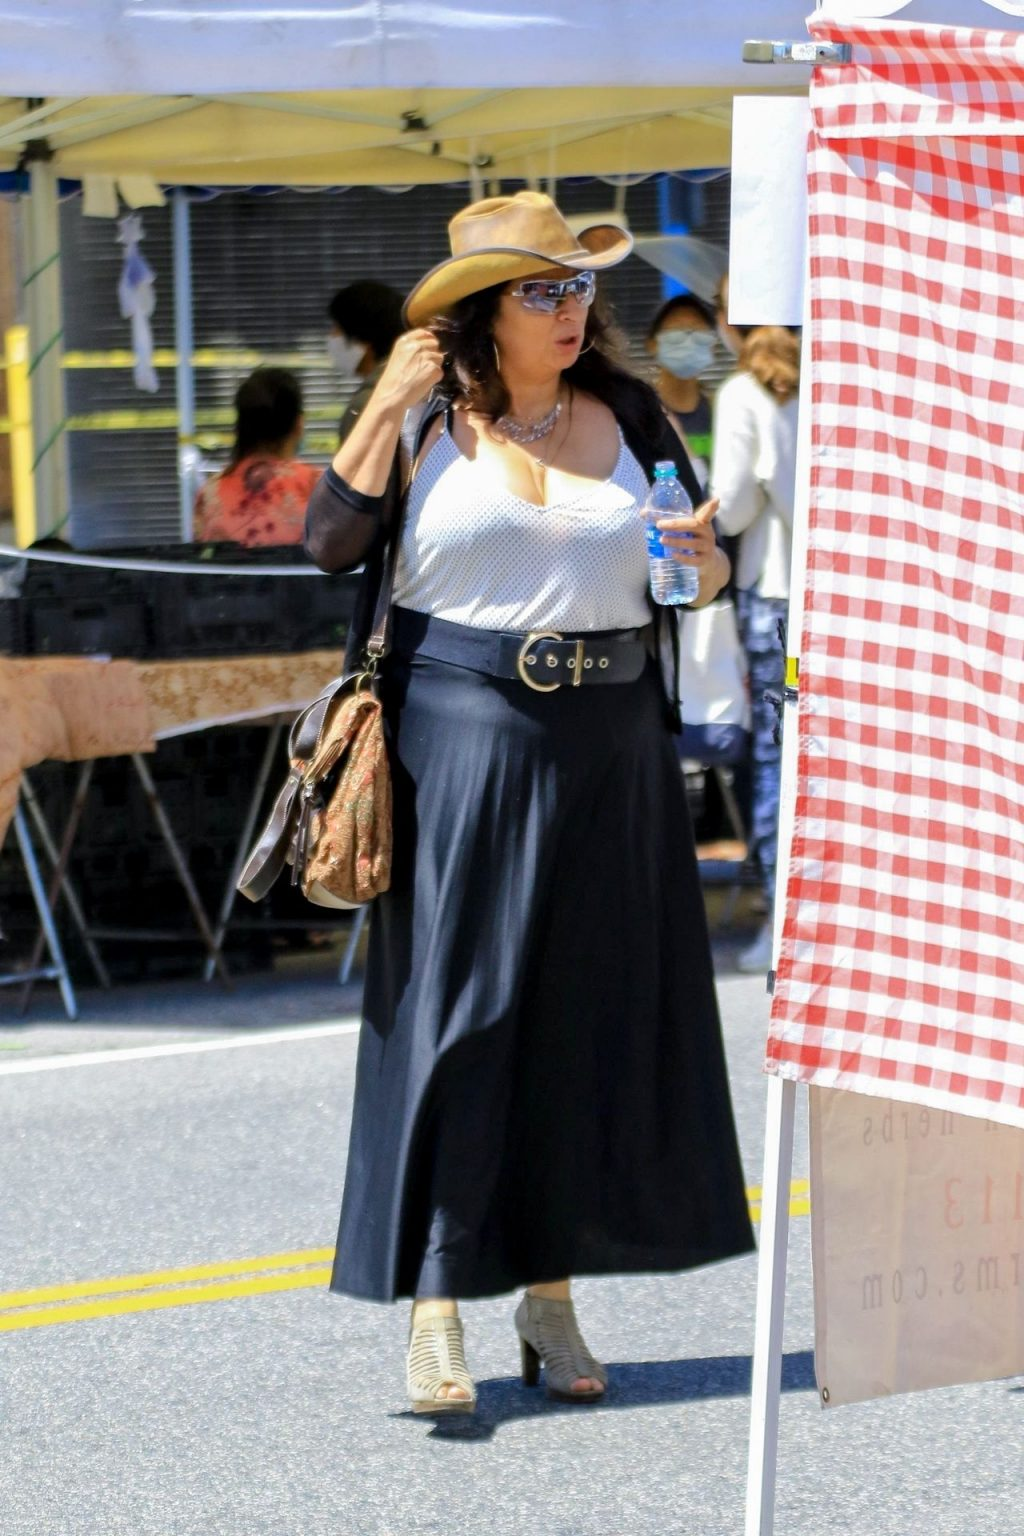 Alice Amter Quenches Her Thirst While Shopping at Farmer's Market (41 Photos)